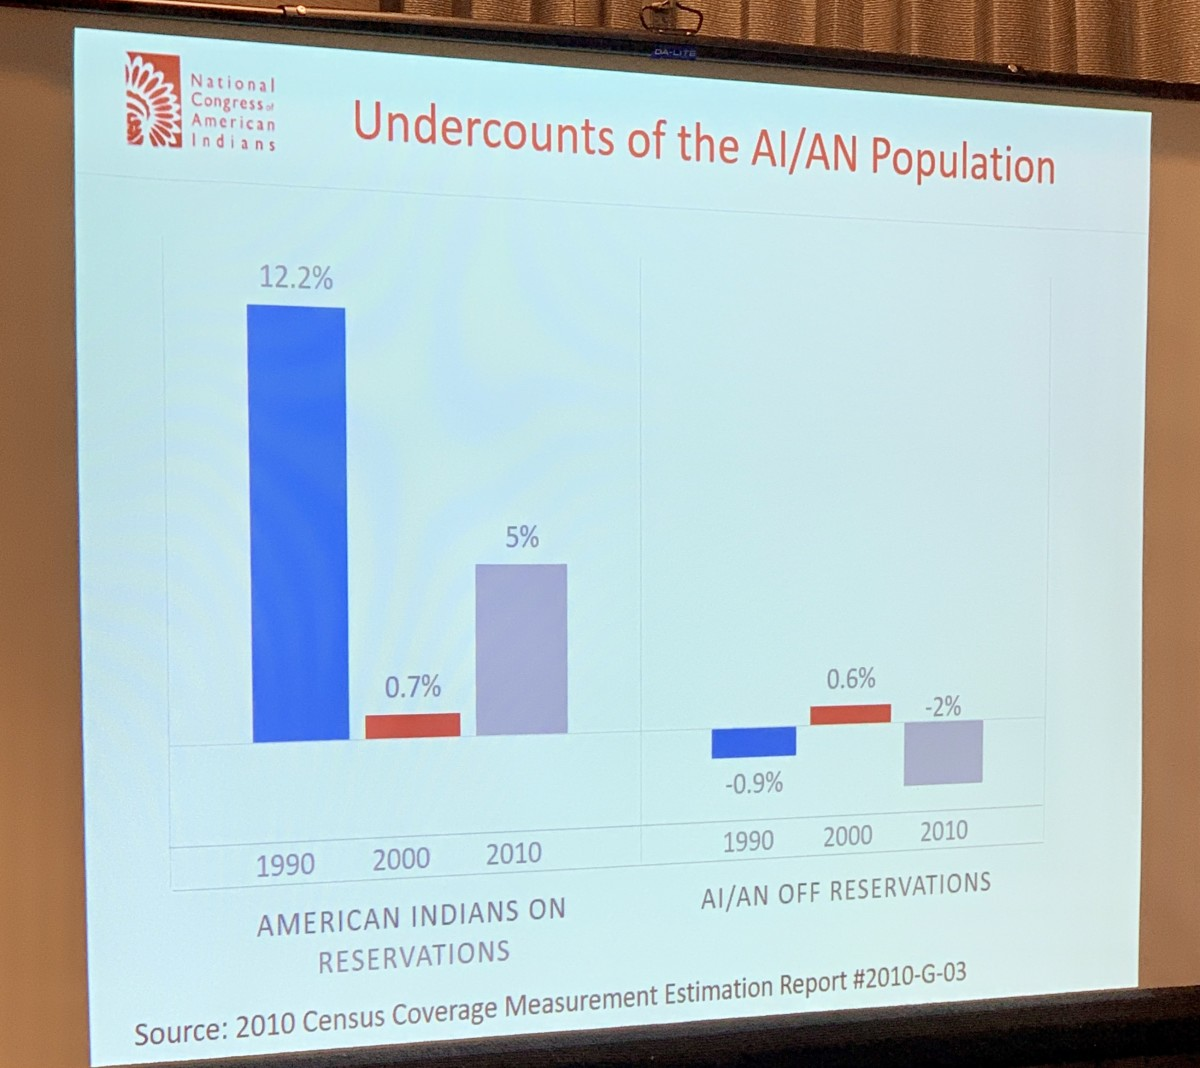 Undercount of the American Indian and Alaska Native population in the 1990, 2000, and 2010 Census. (Graph by the National Congress of American Indians)